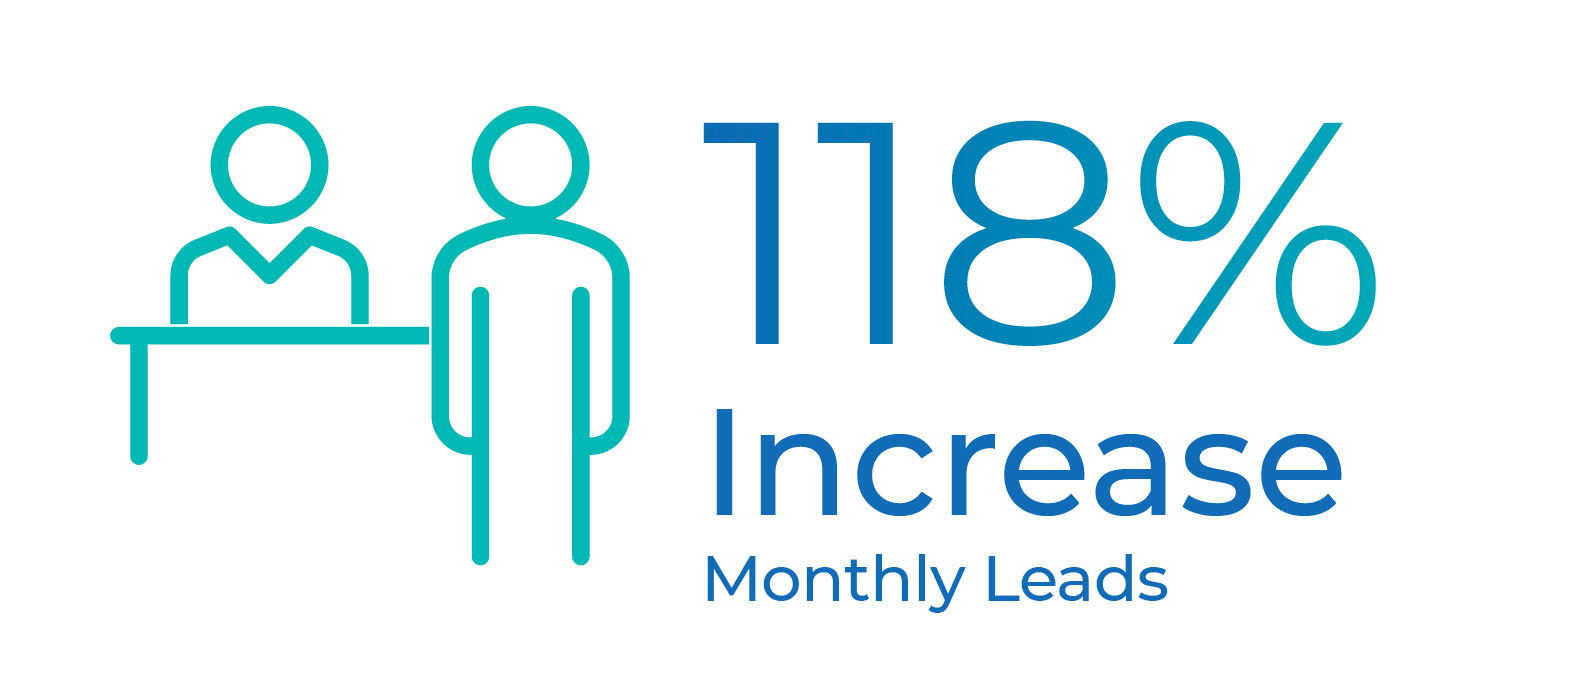 Monthly Leads